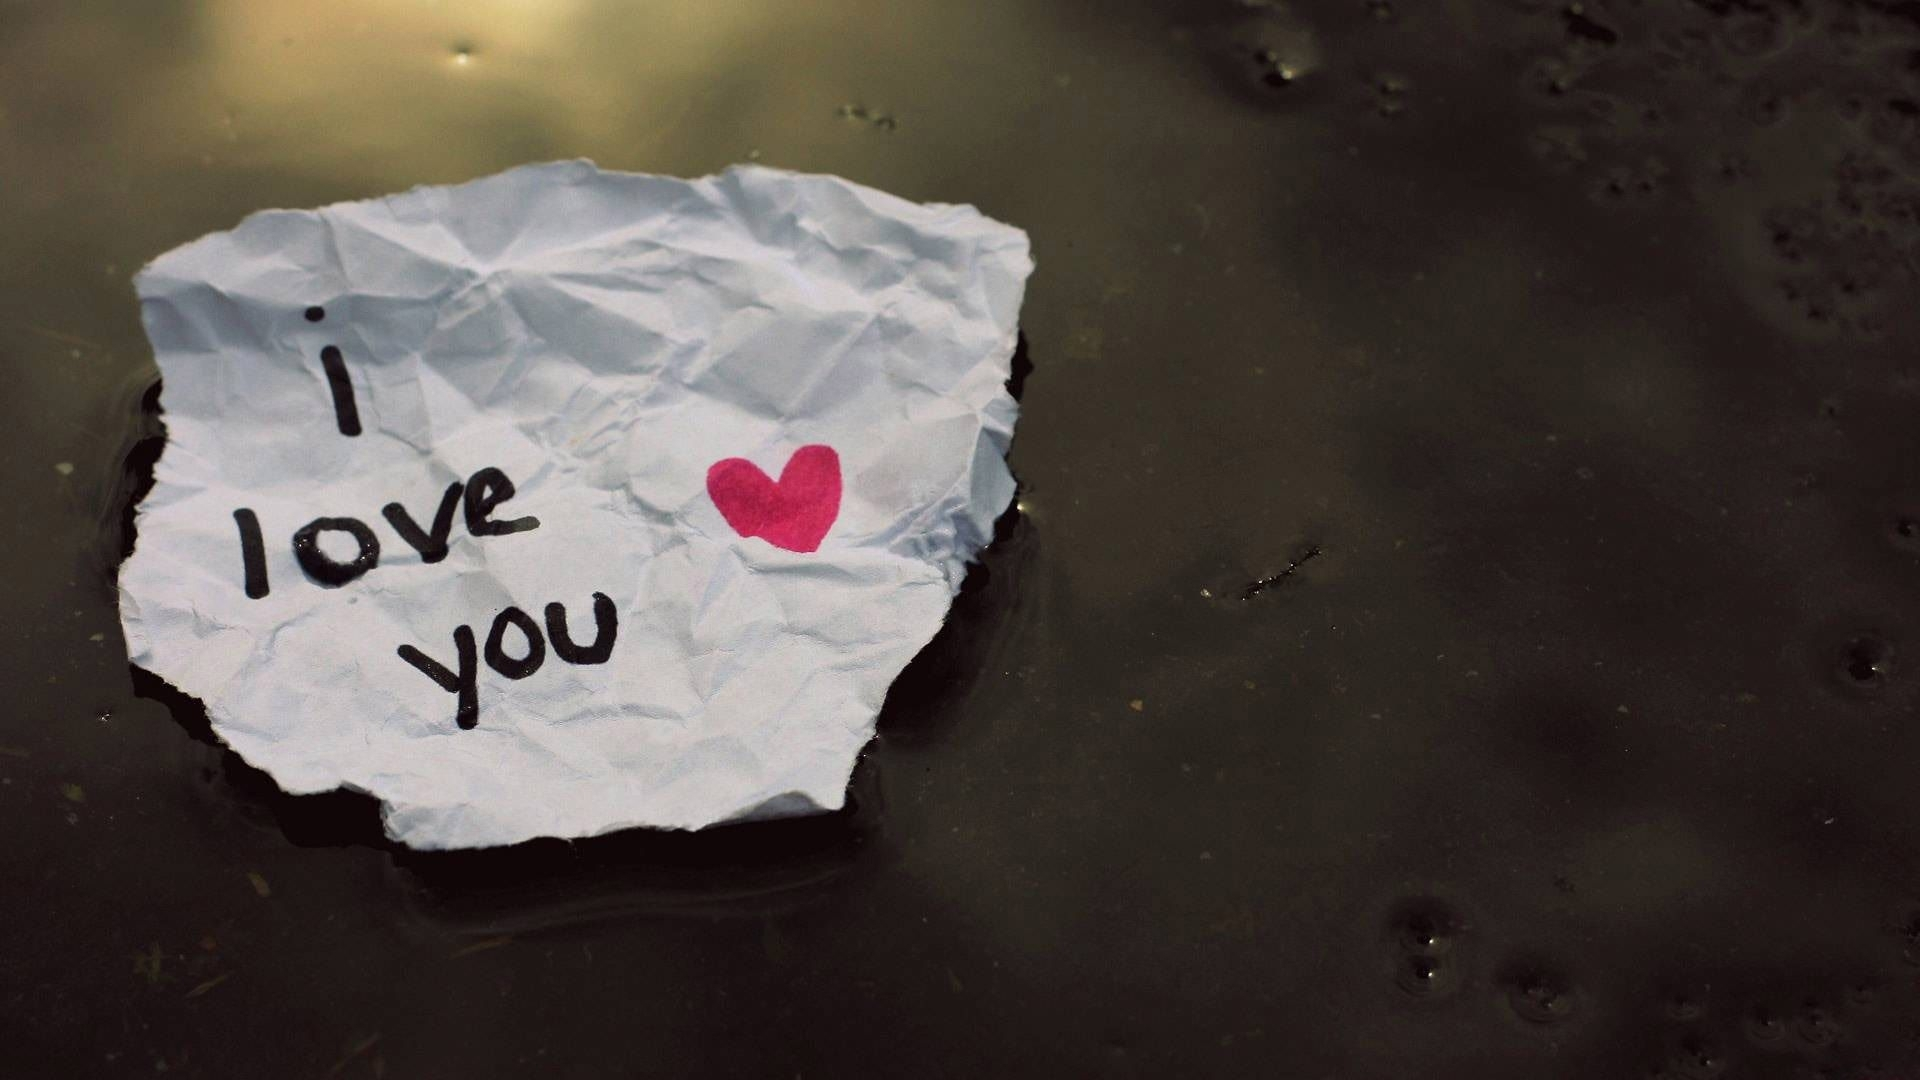 love you backgrounds | hd backgrounds pic